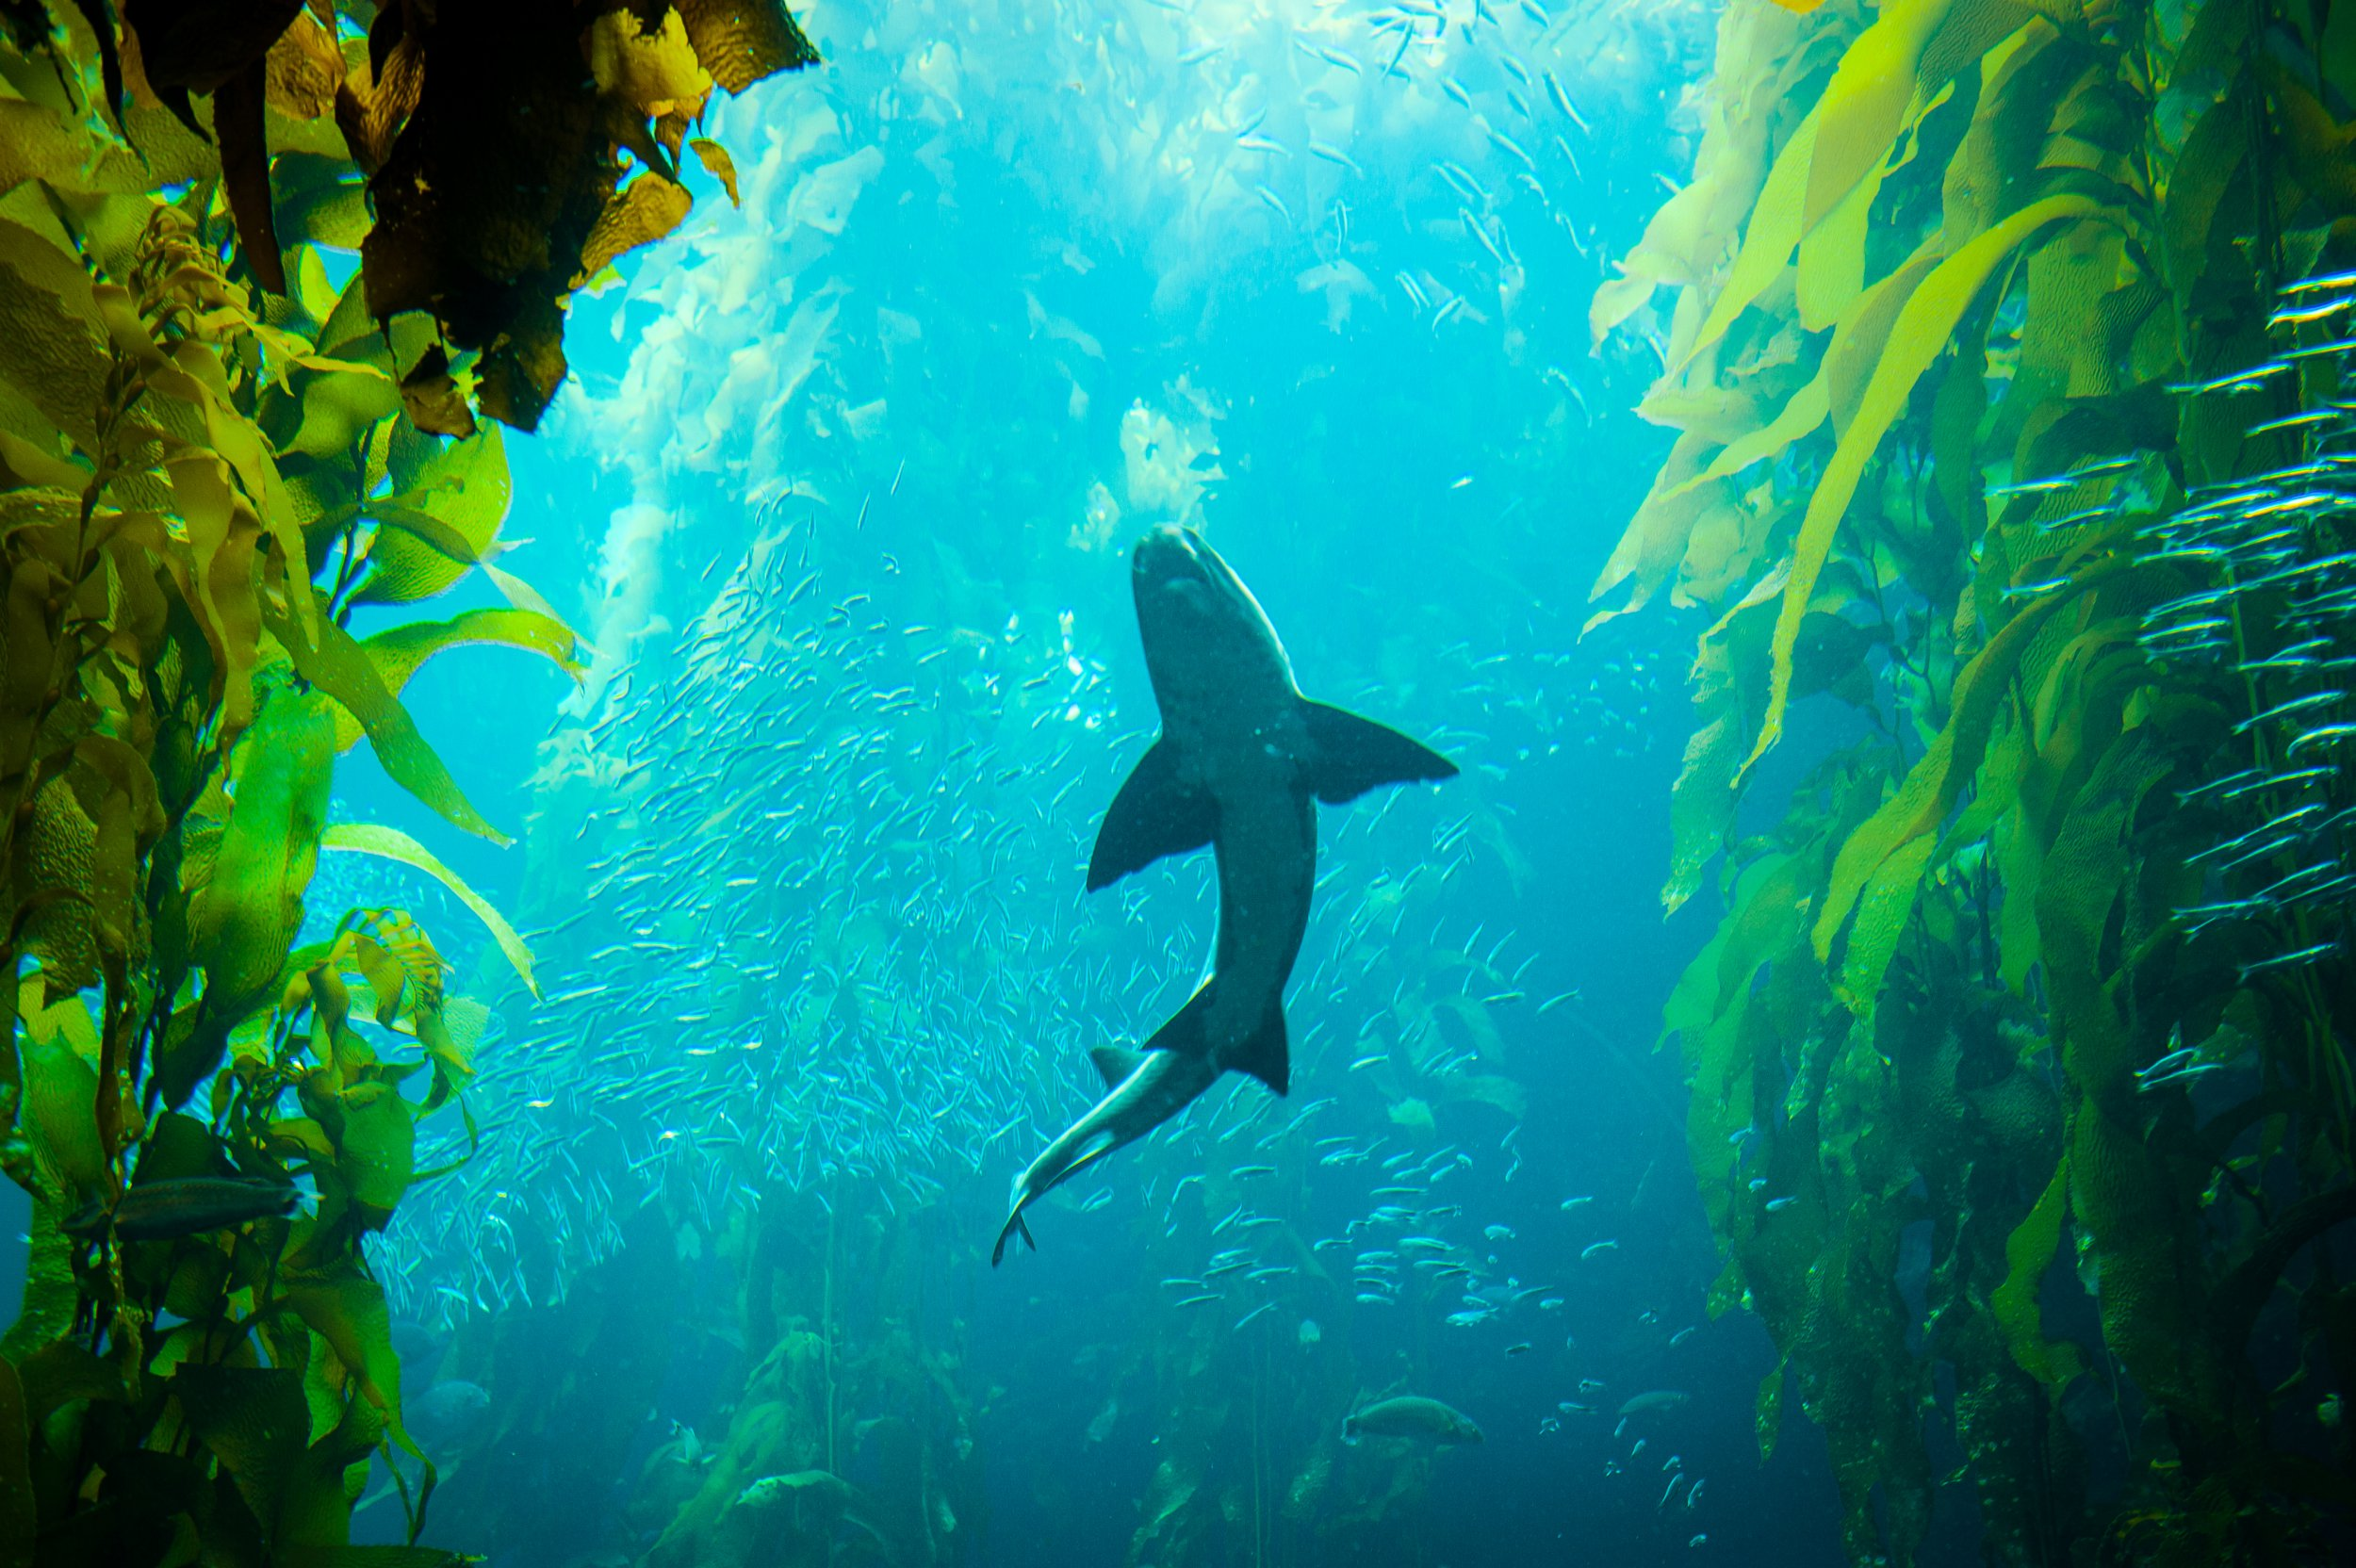 A shark is swimming in the kelp forest in the sea.